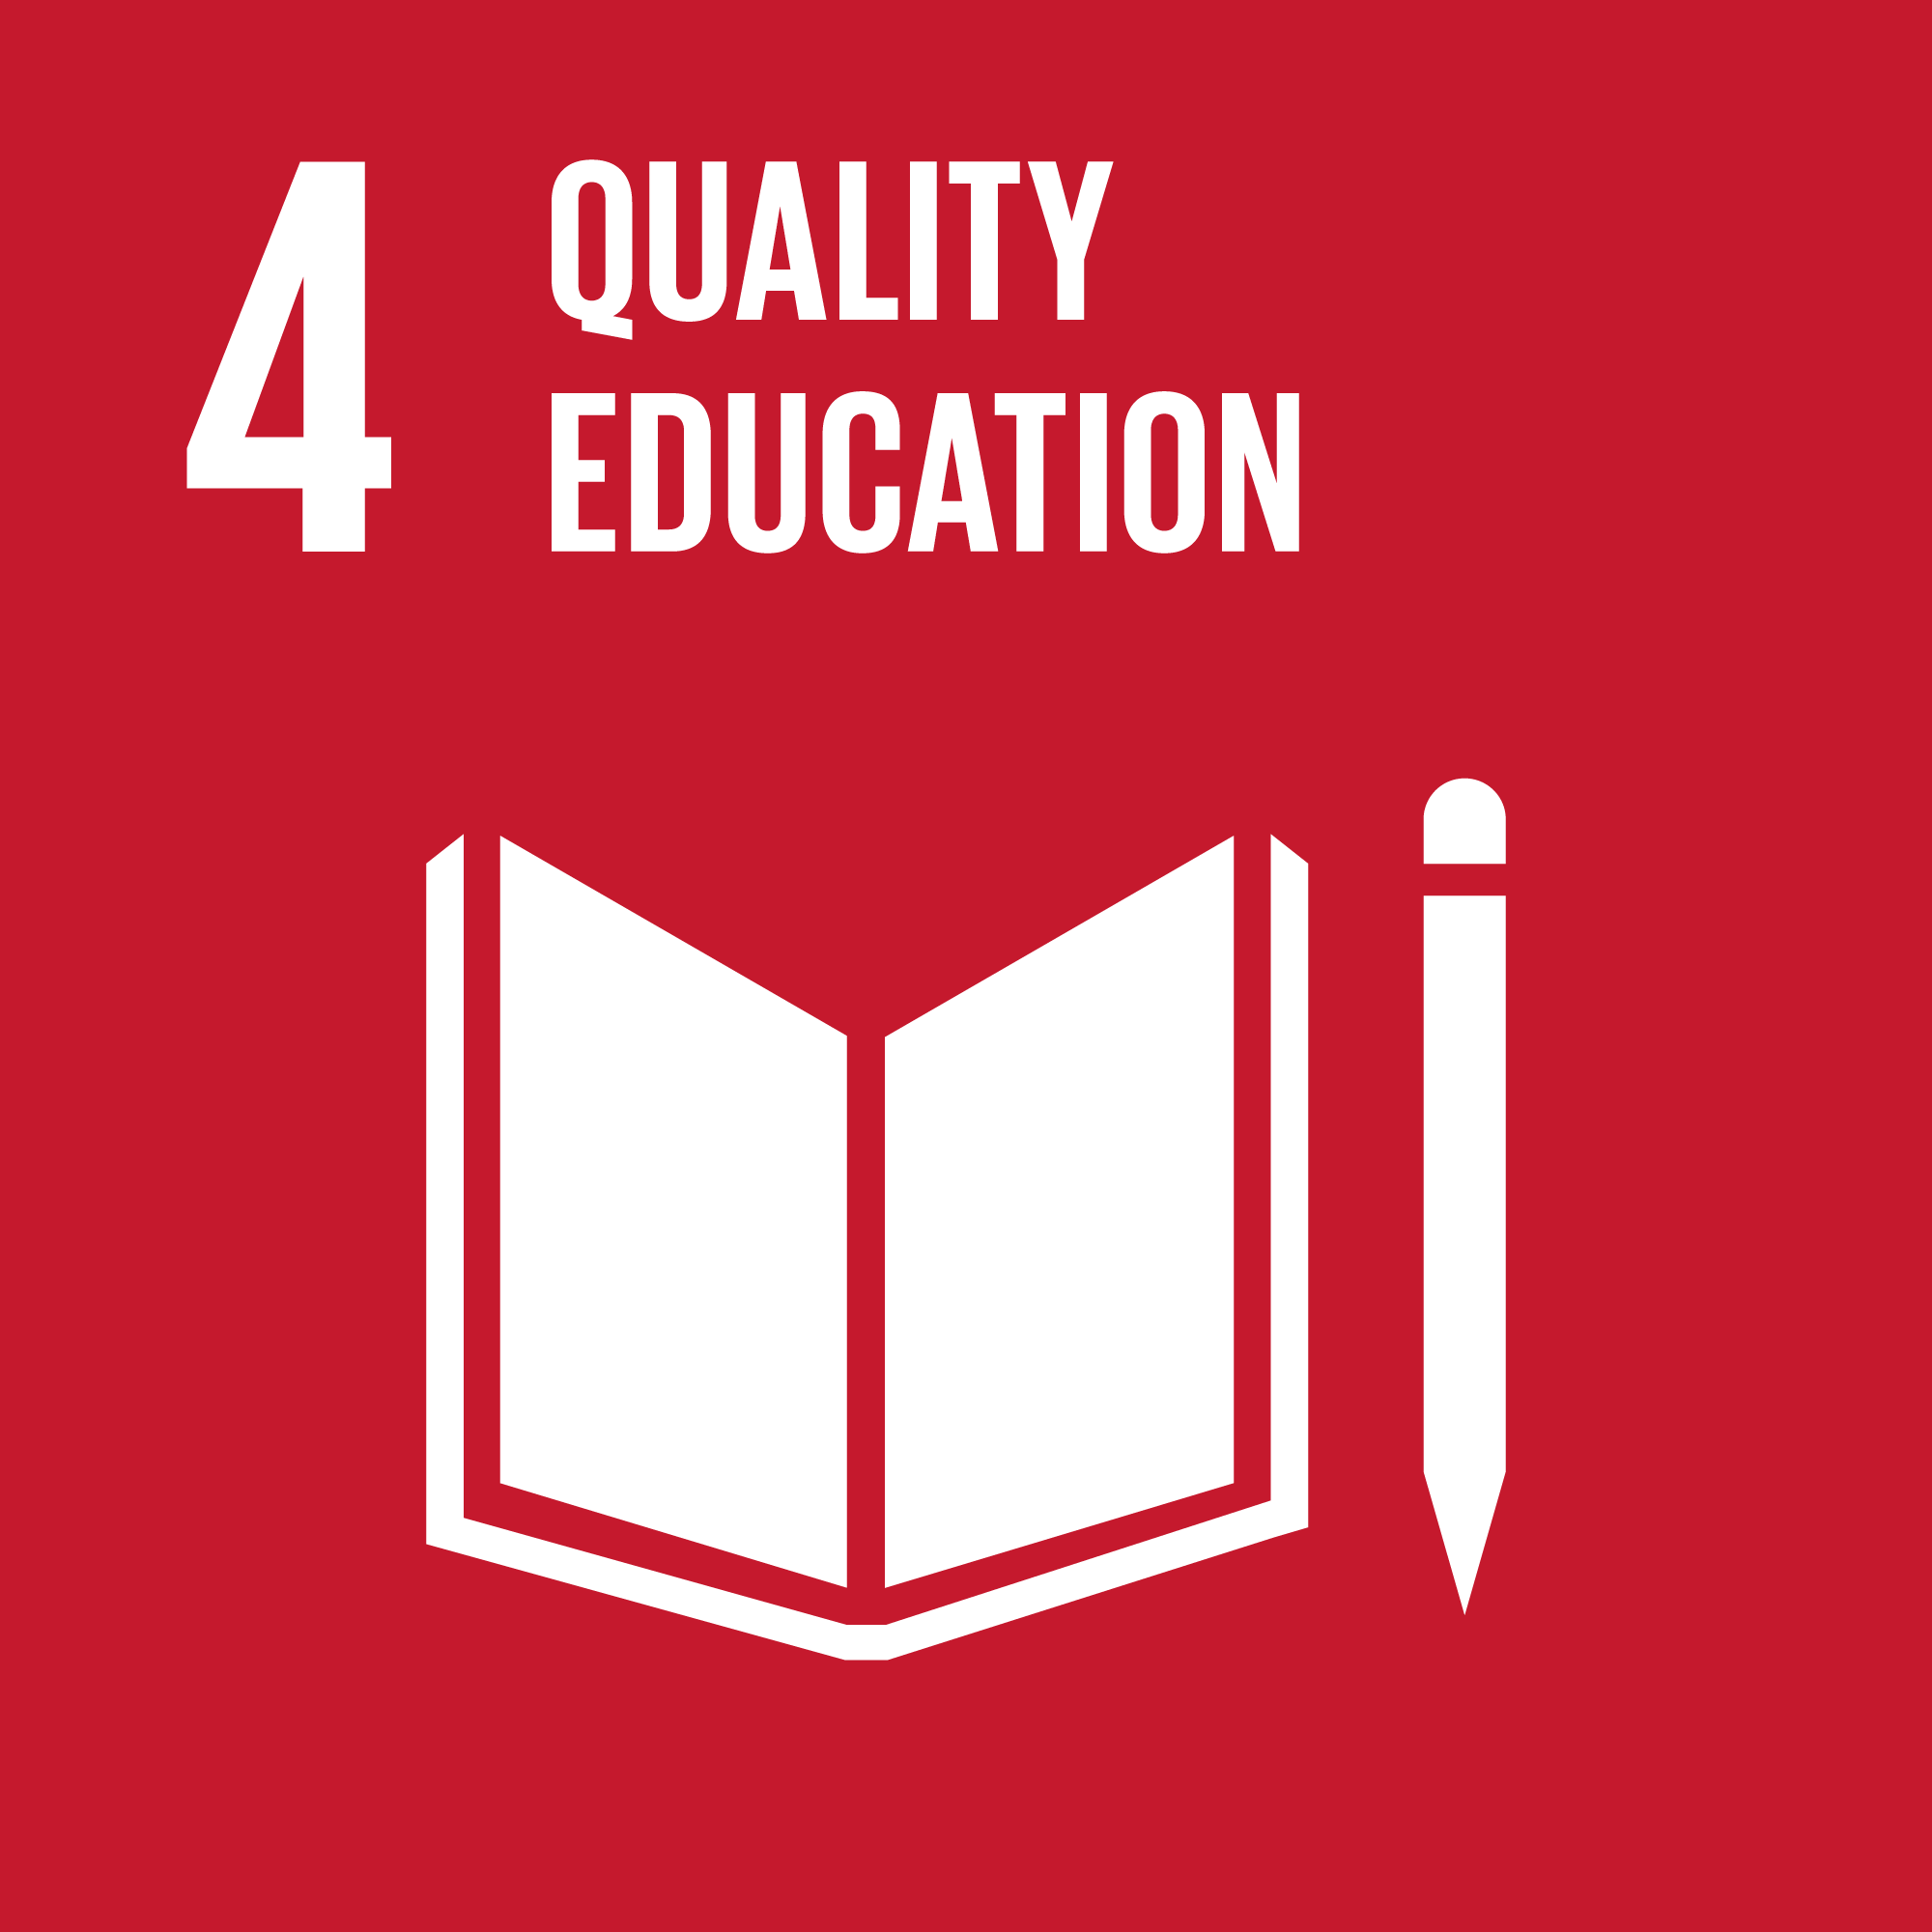 Agenda 2030 goal number 4: Quality education